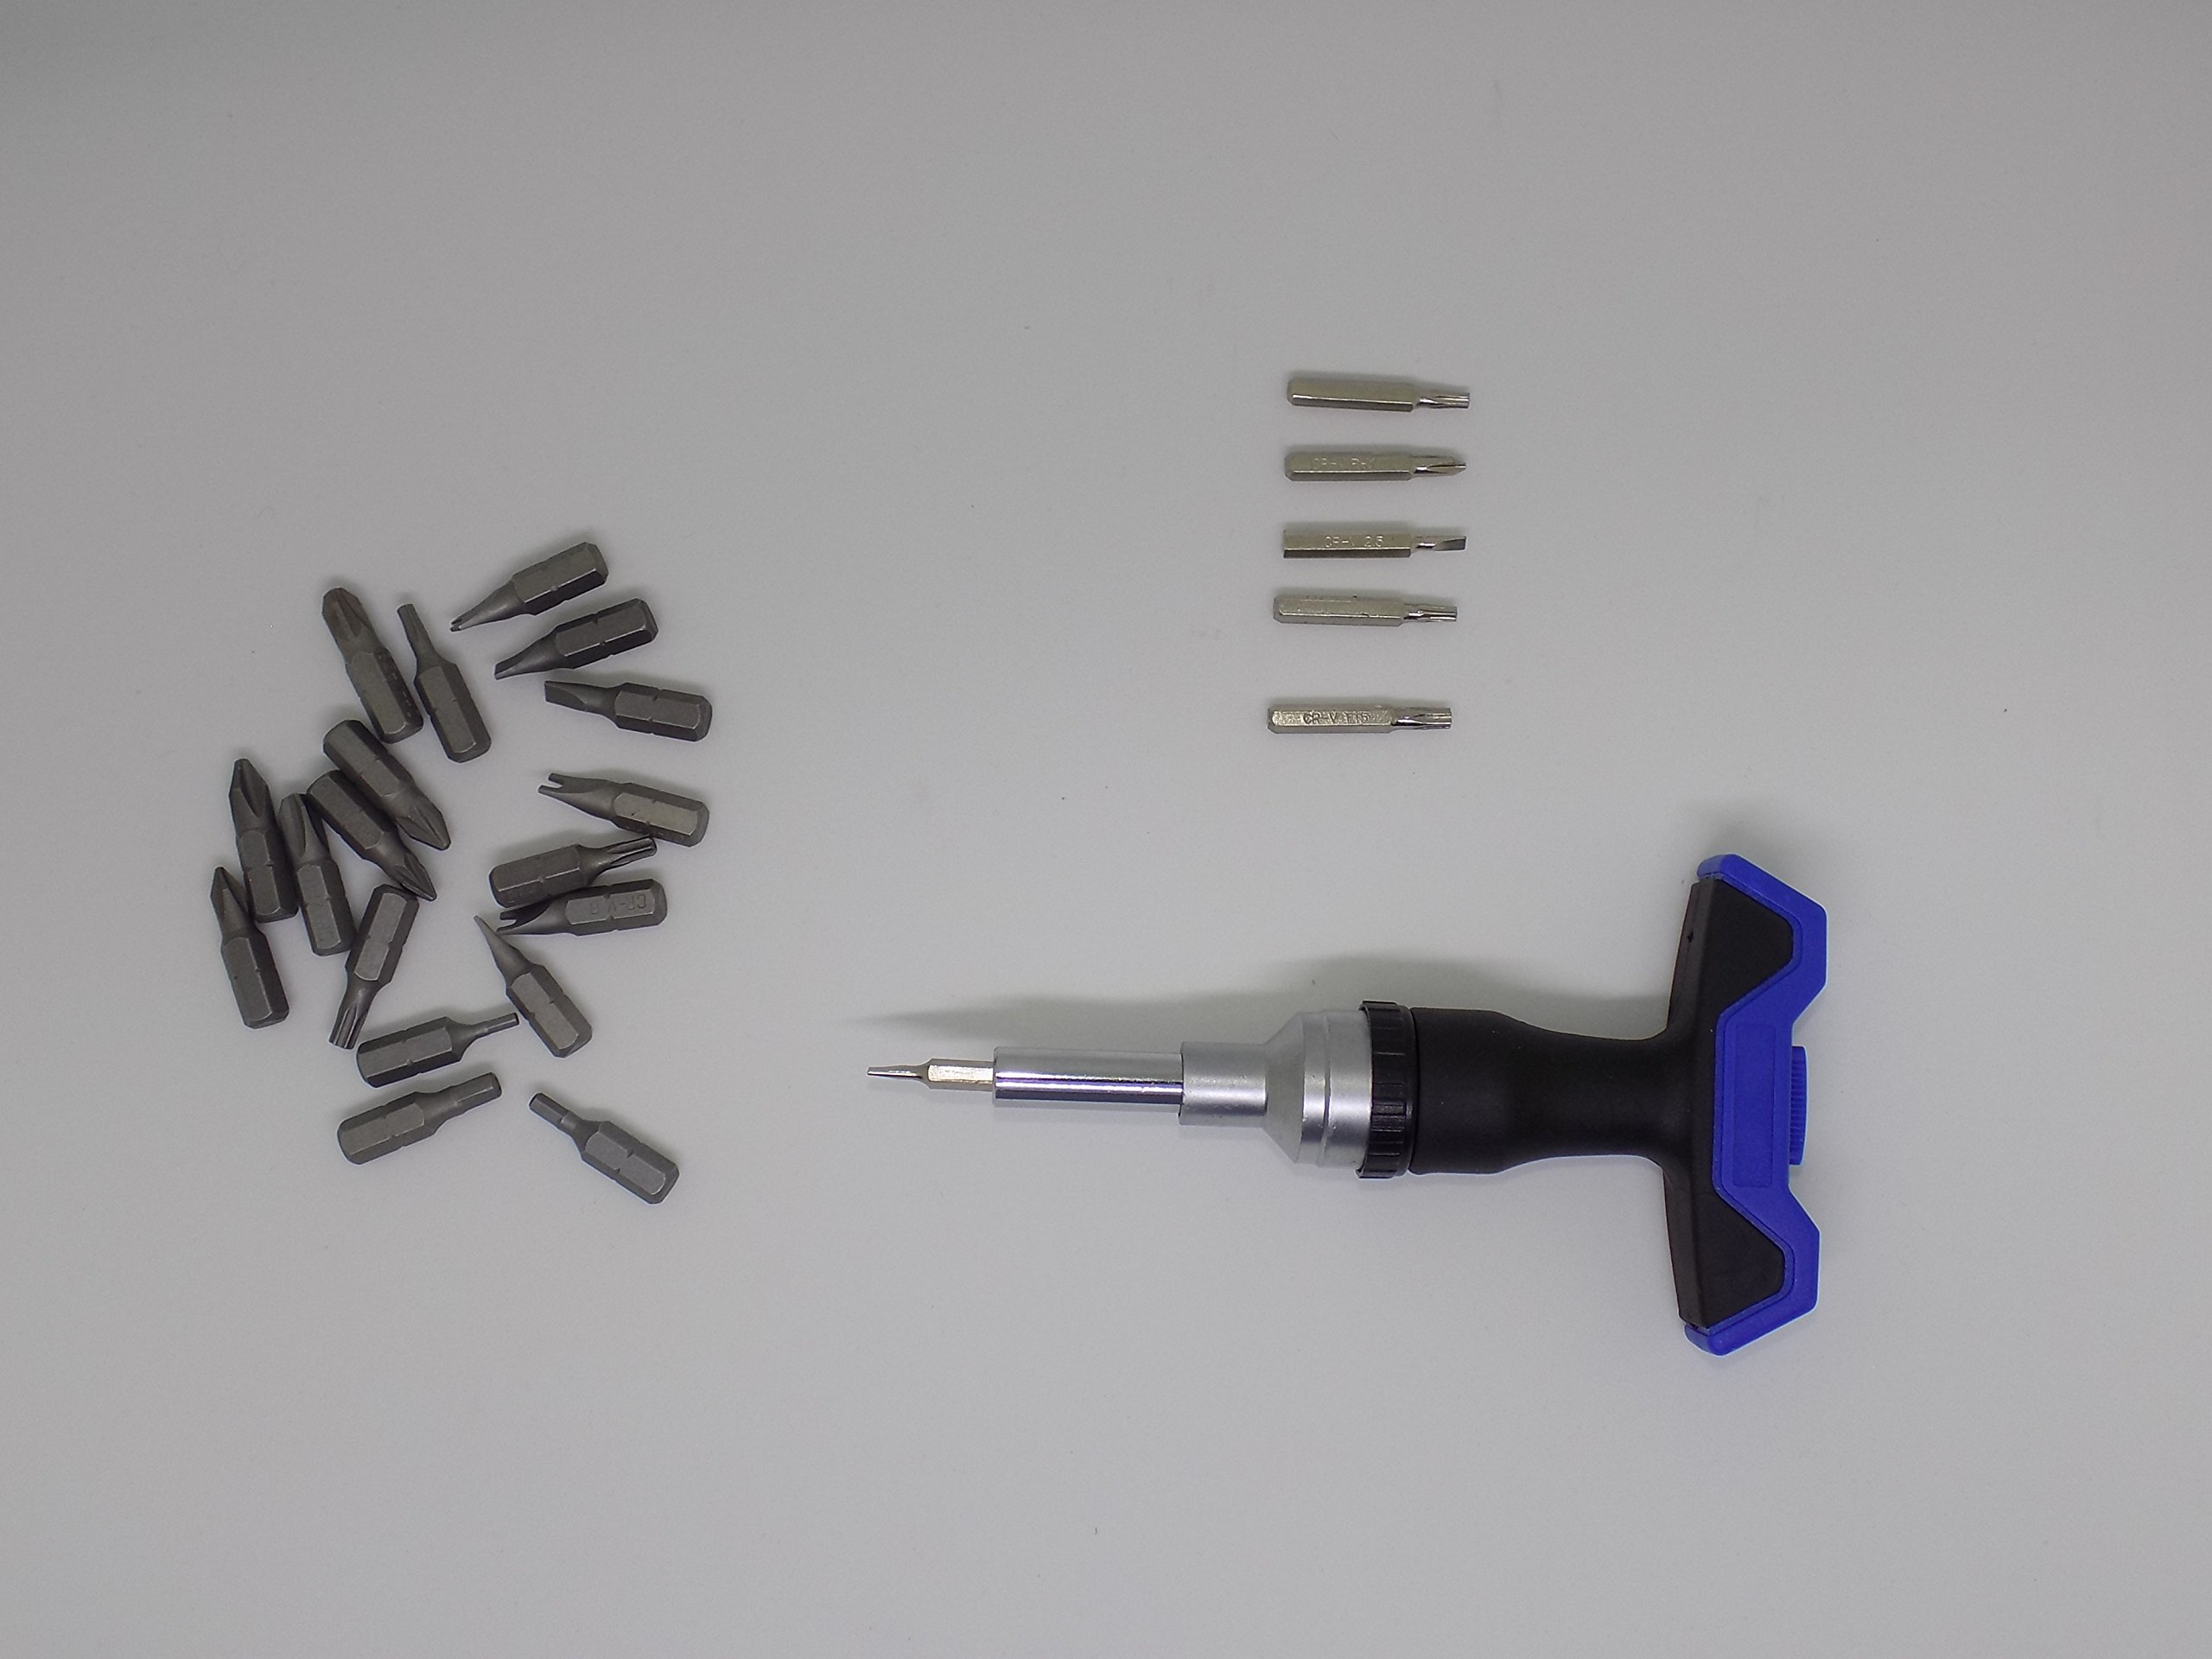 Screwdriver set, 26 can replace the high-strength screw head, removable more convenient, handle with forward and reverse conversion knob, can be used for daily maintenance of various home, demolition.